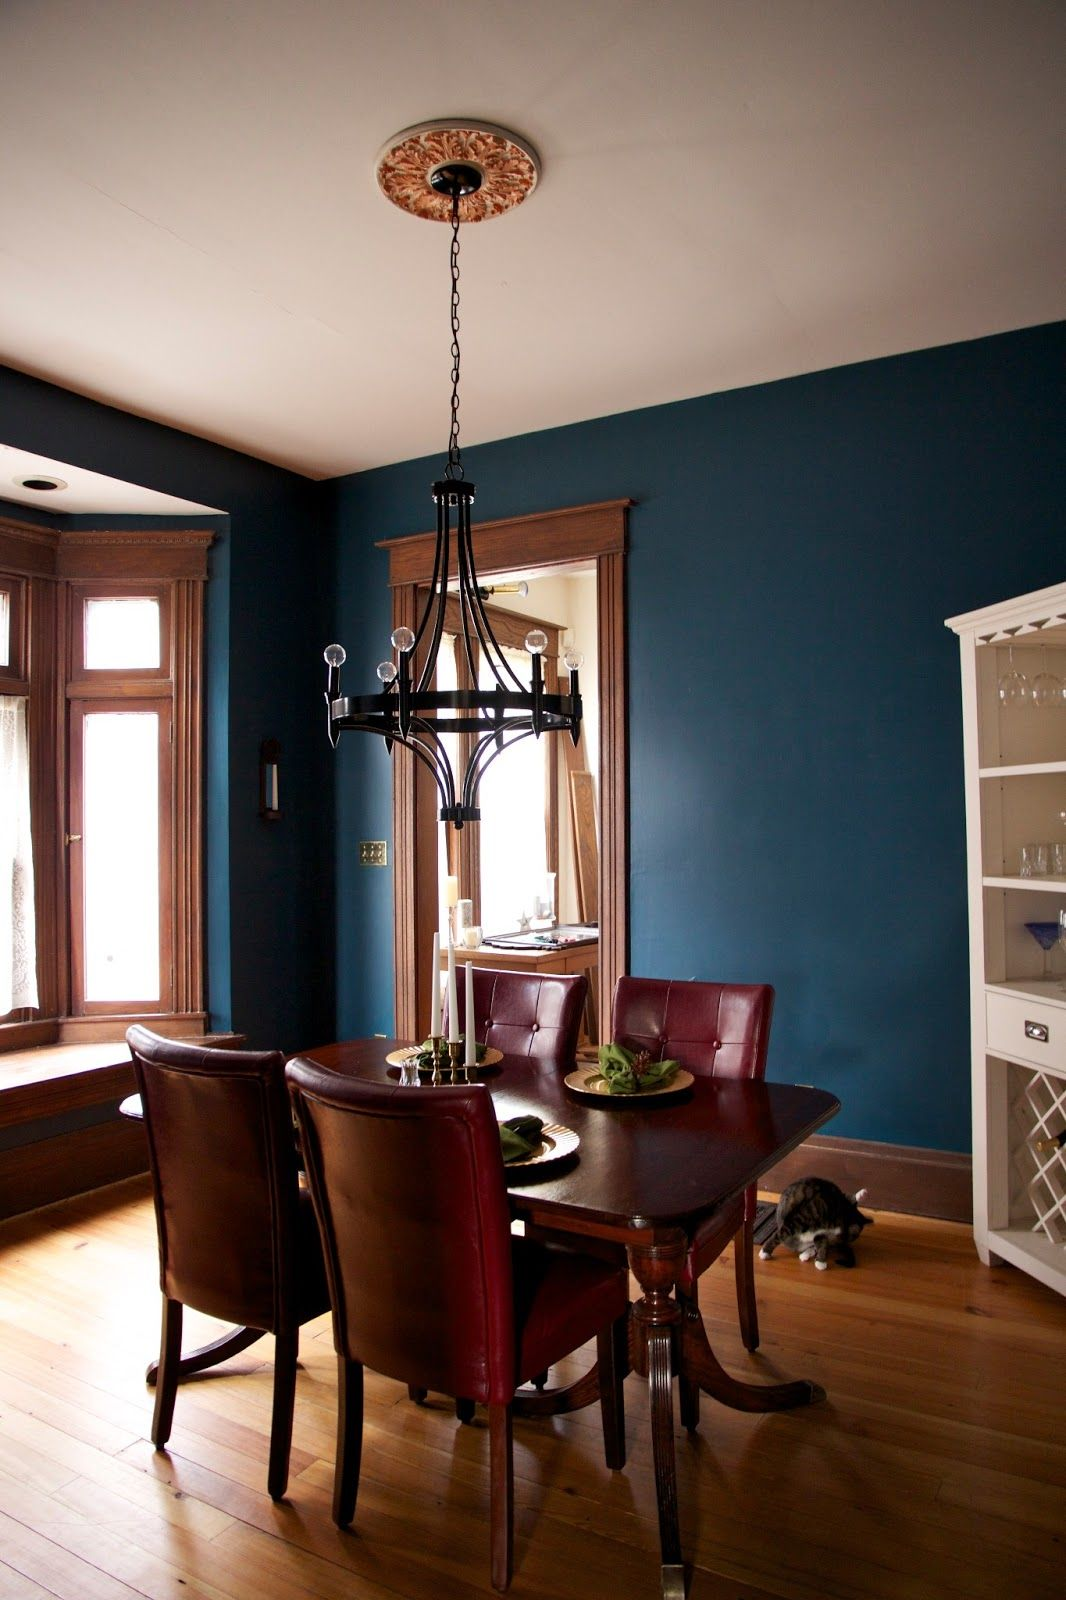 Dark teal wall paint and unpainted wooden trim for the